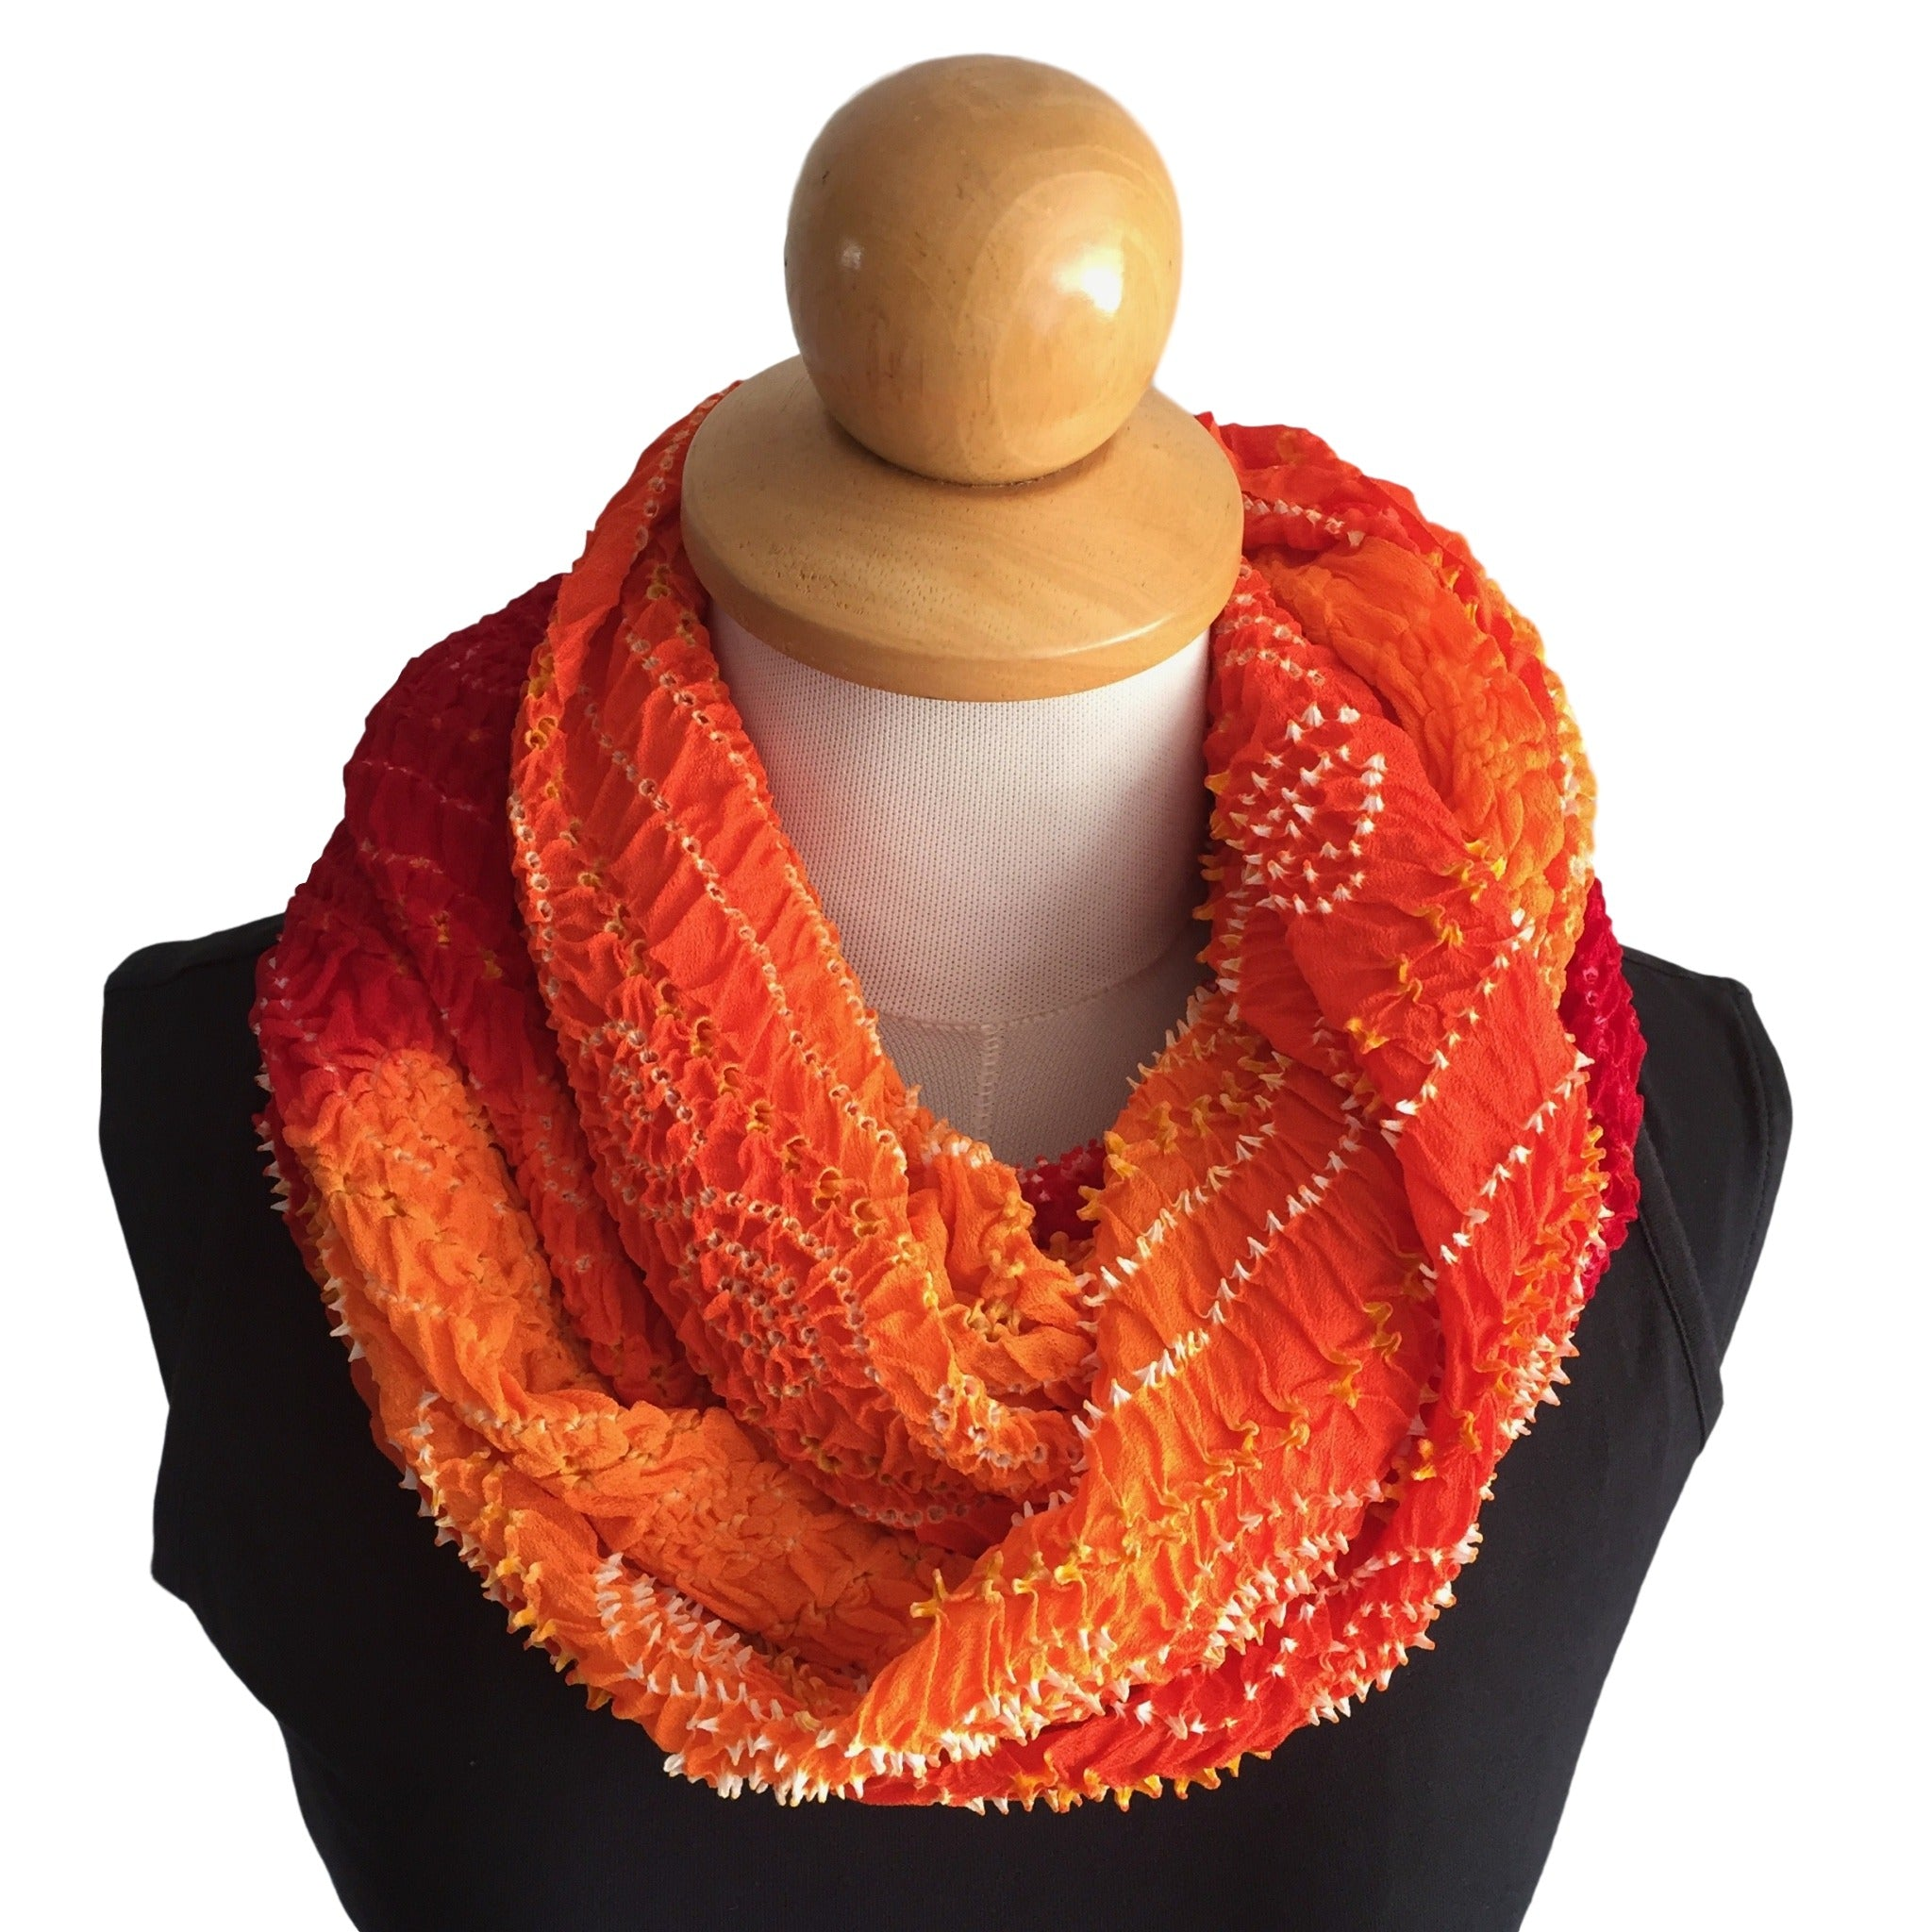 Silk Crepe Bandhani Scarf in Red, Orange and Gold - Pallu Design